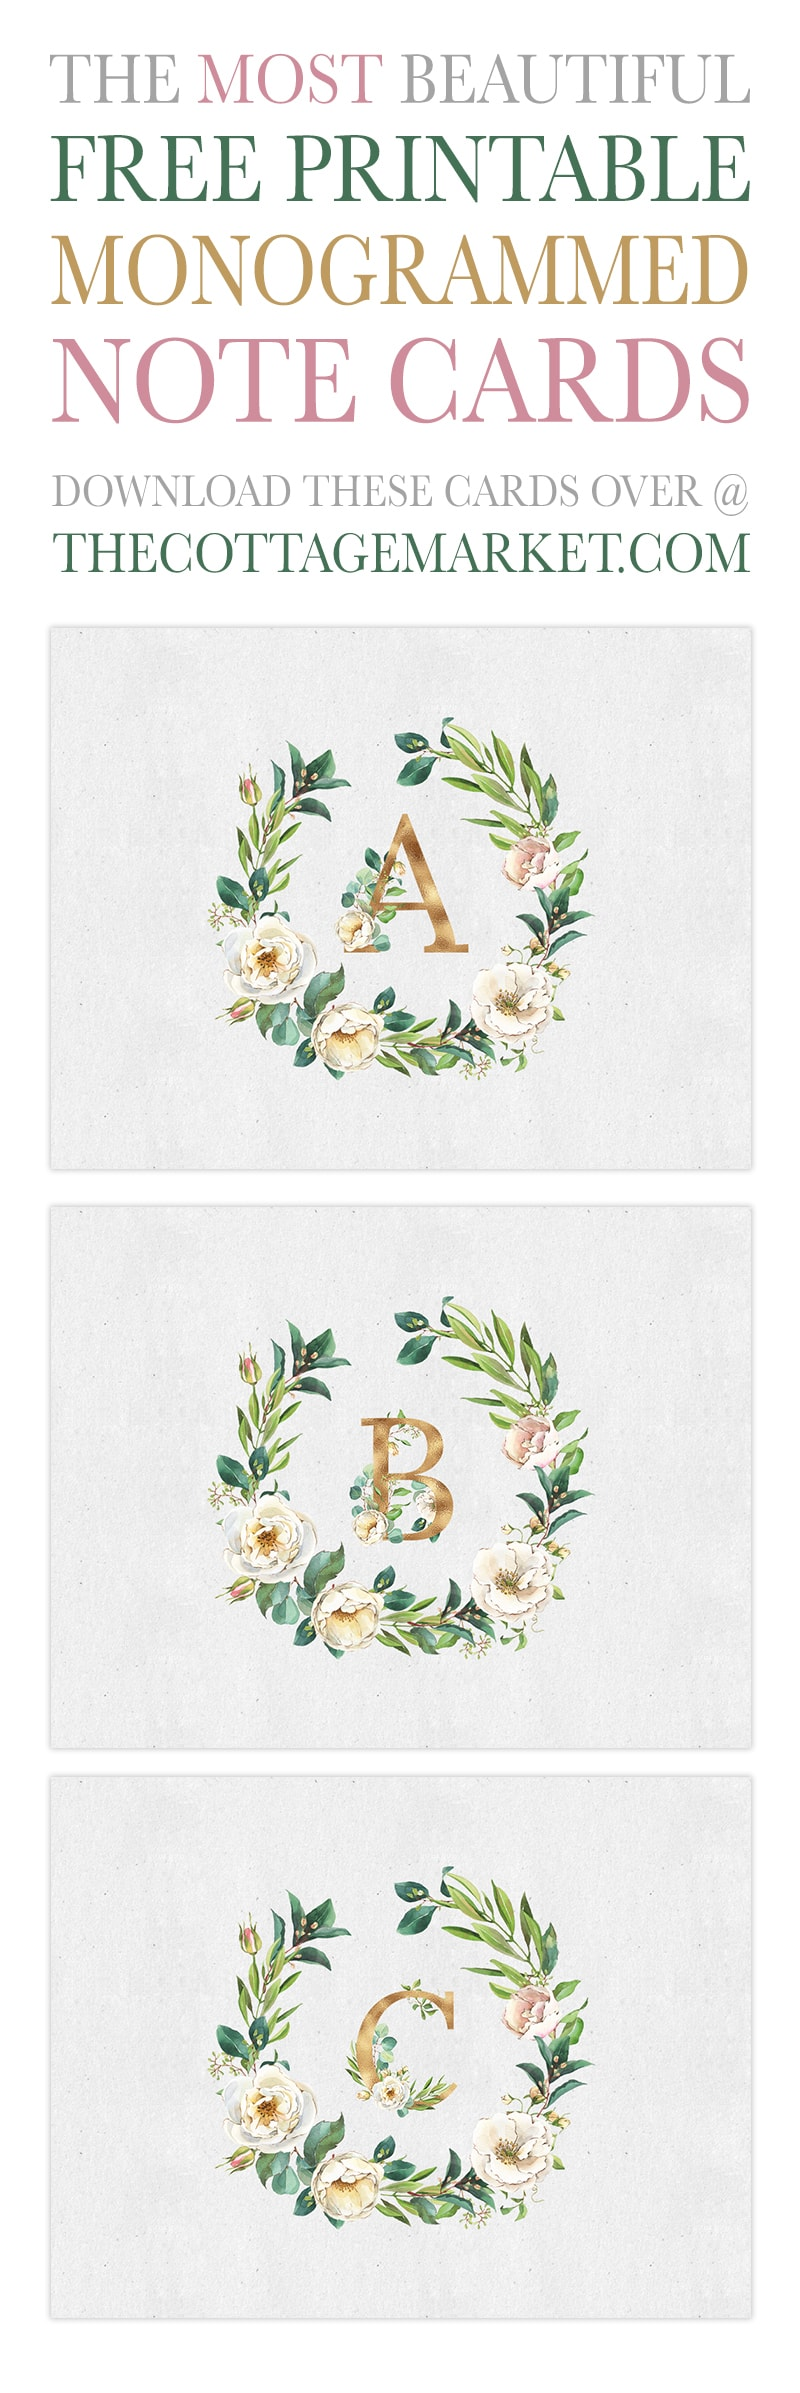 https://thecottagemarket.com/wp-content/uploads/2020/02/TCM-Monogramed-NoteCards-T-1-copy.jpg